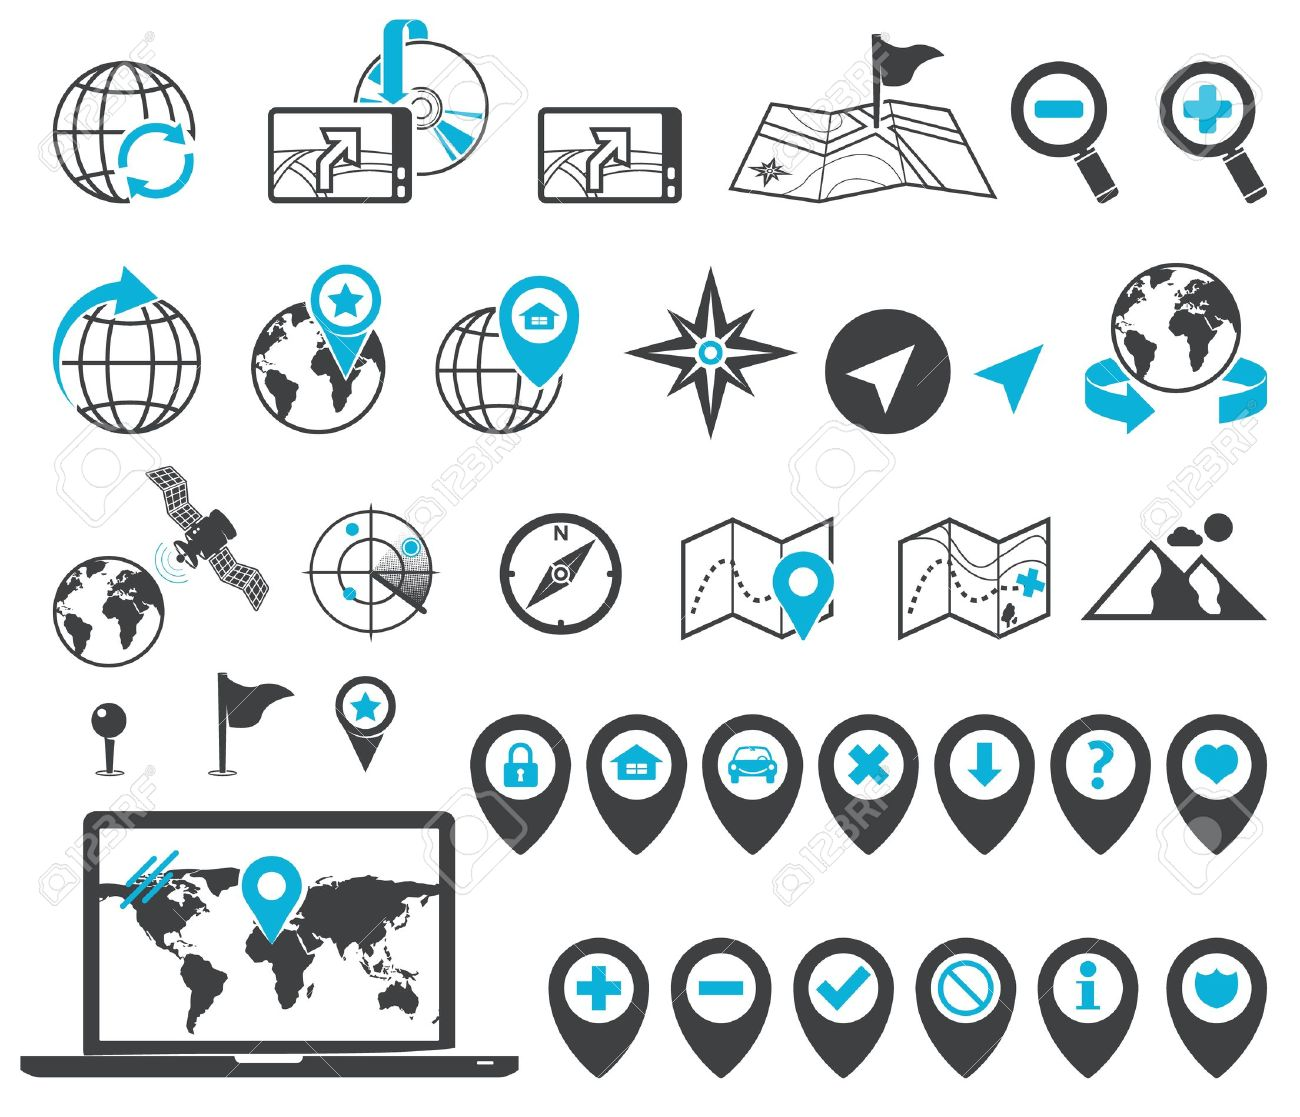 Map, Location And Destination Markers And Icons Royalty Free ...